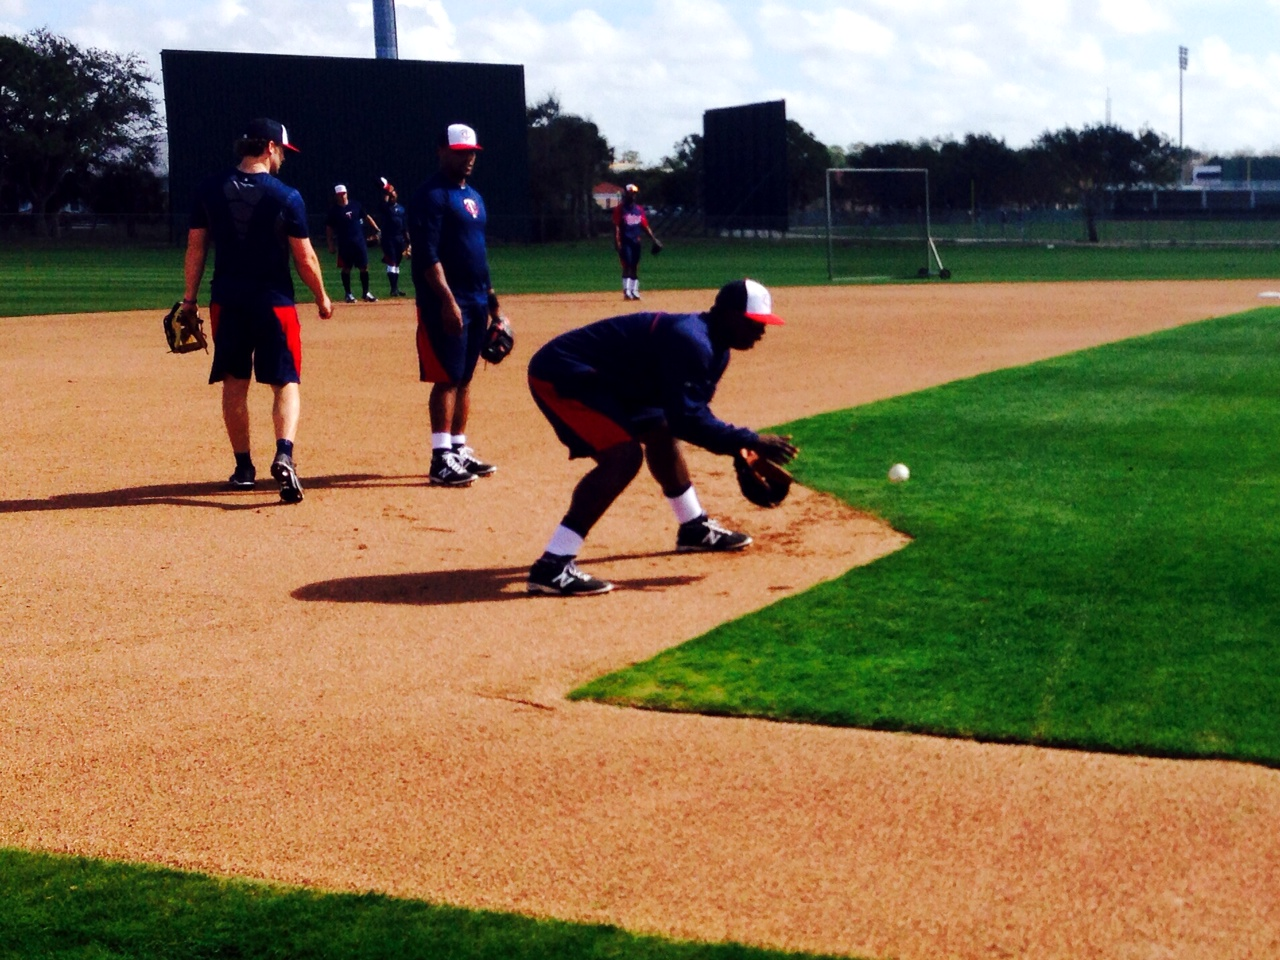 Sano taking grounders